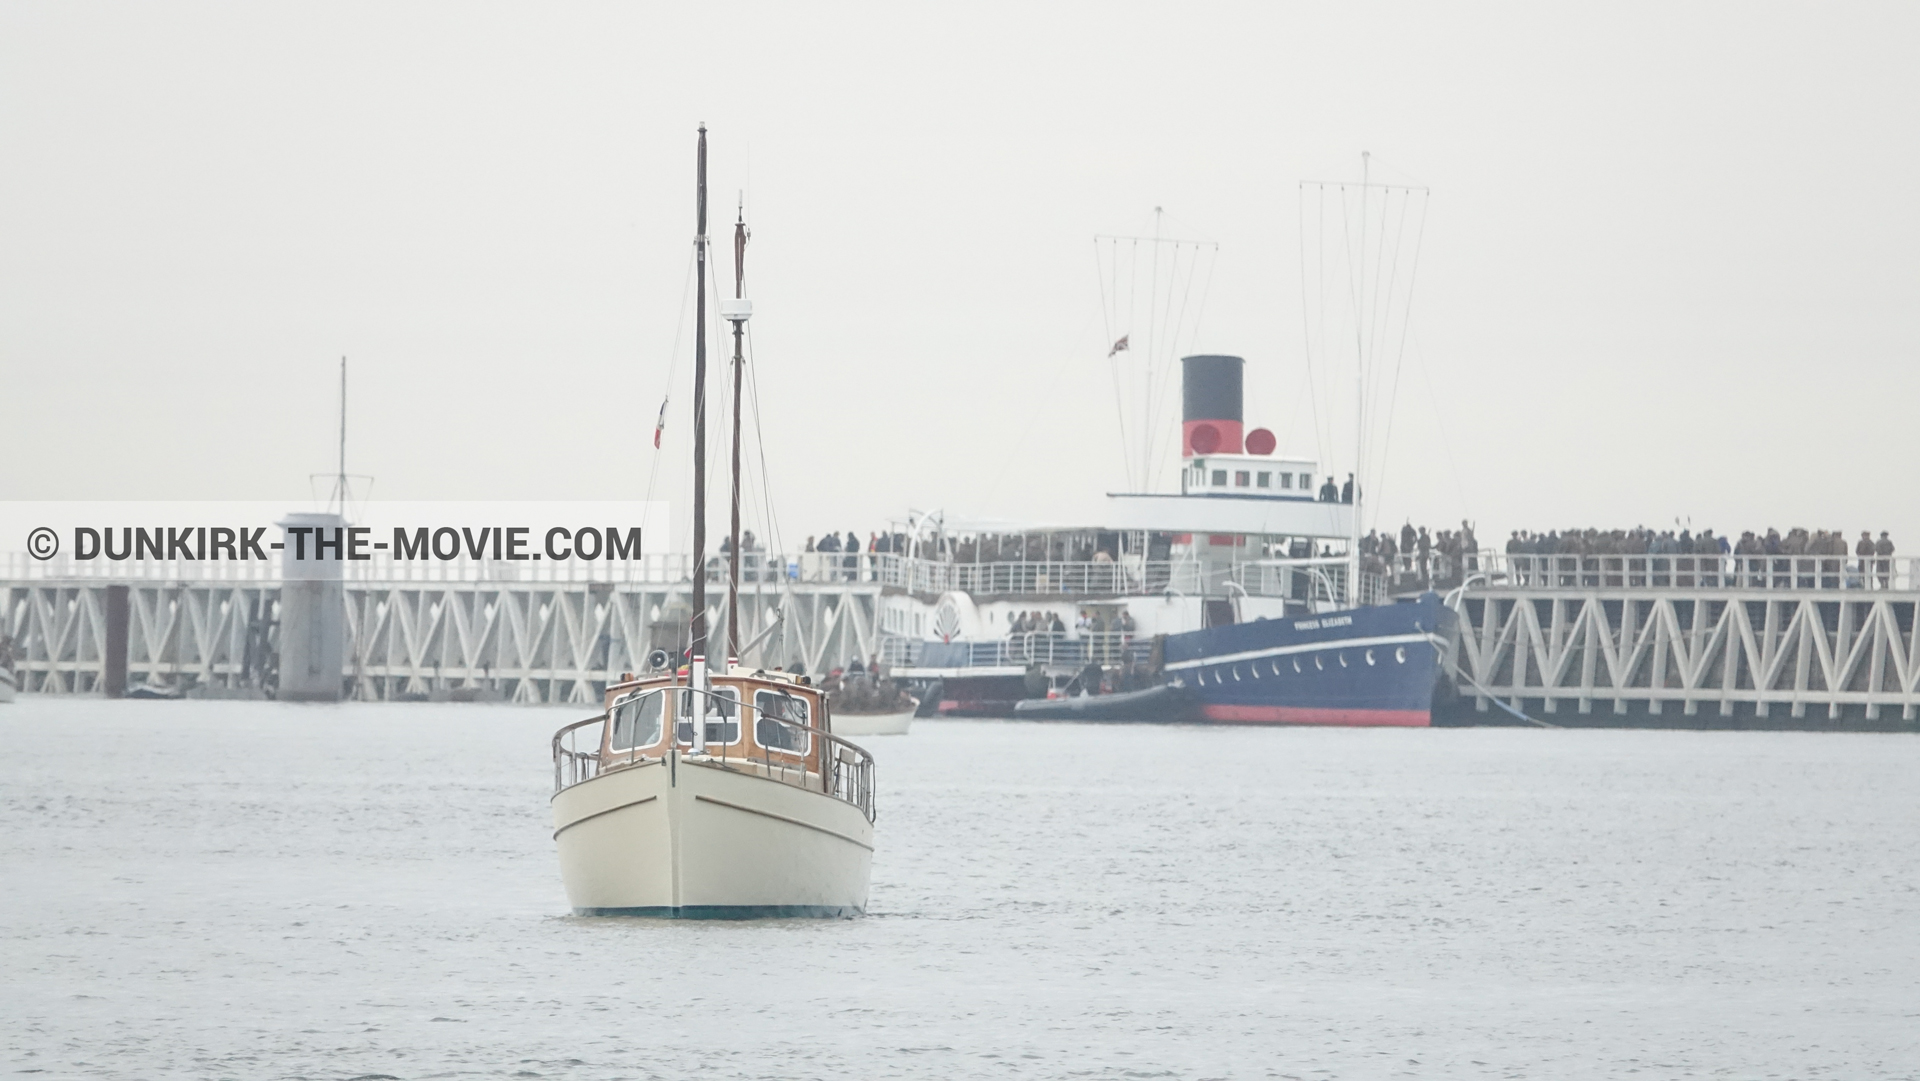 Picture with boat, EST pier, Princess Elizabeth,  from behind the scene of the Dunkirk movie by Nolan